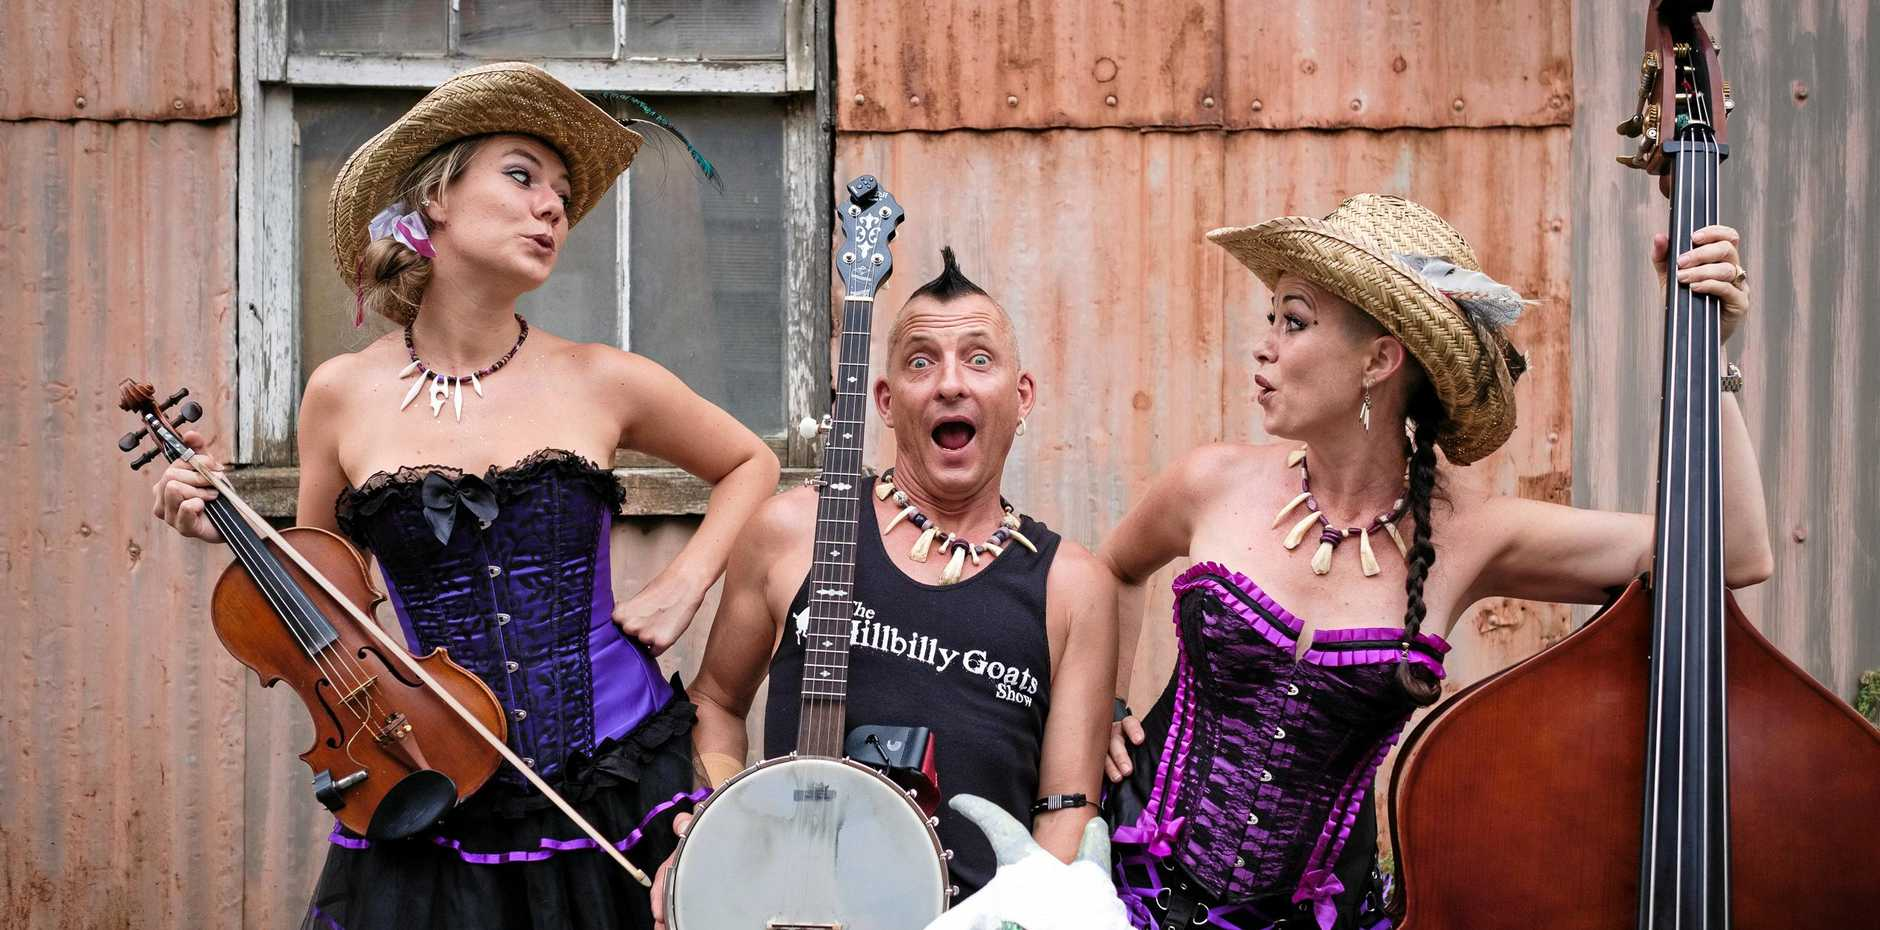 The Hillbilly Goats play at the Seabreeze Hotel this weekend.